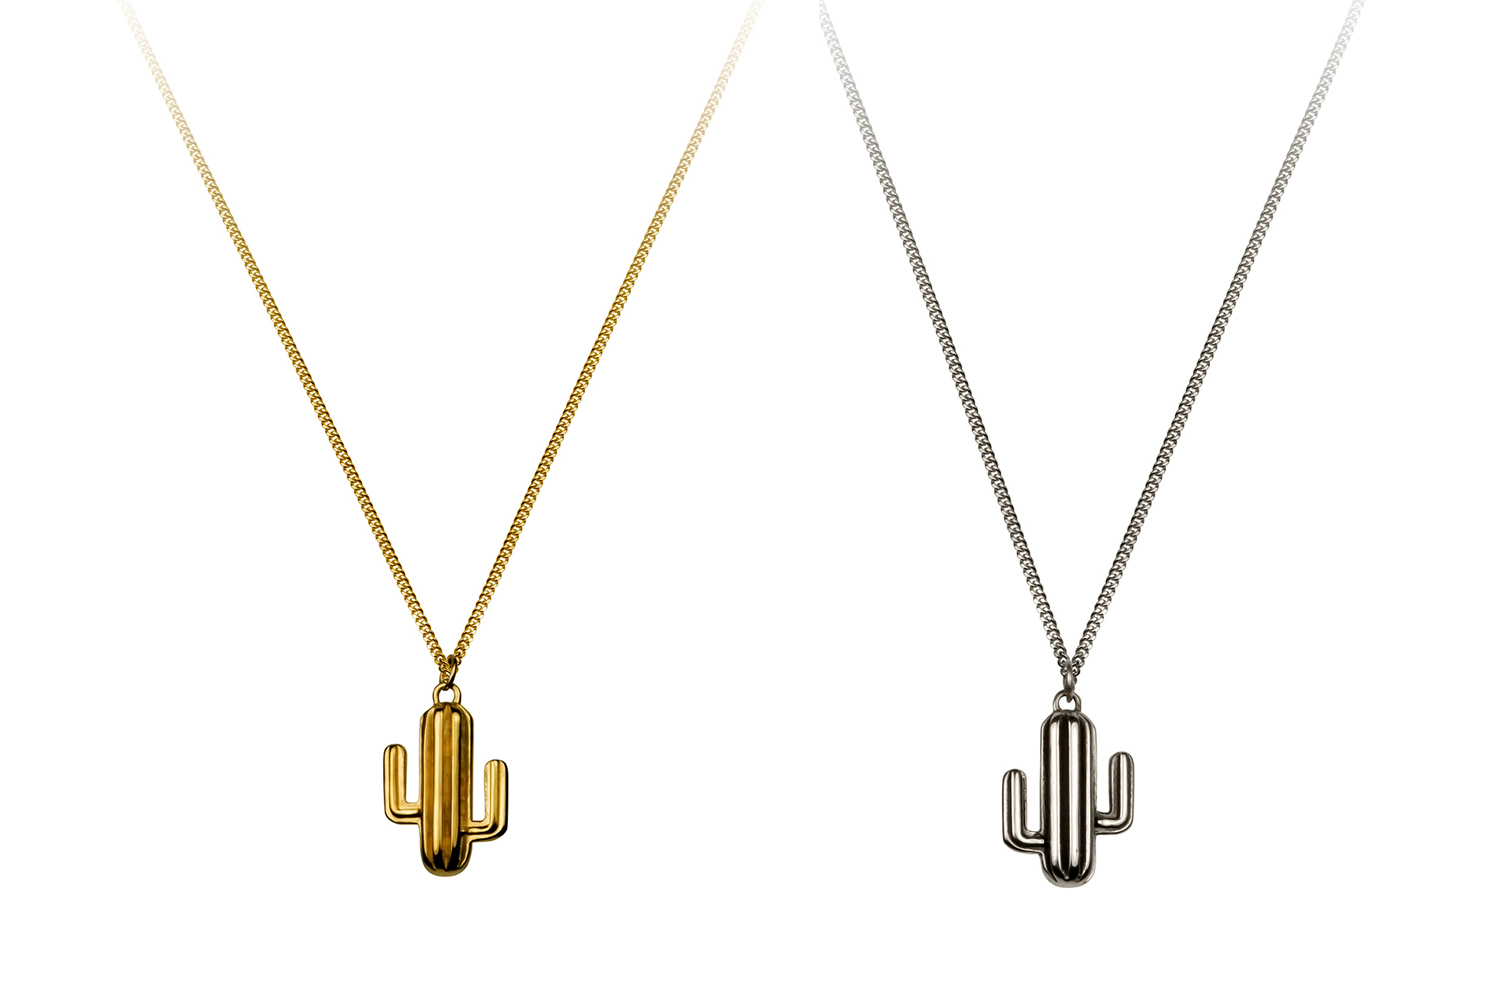 Small Cacti Necklaces in gold and silver